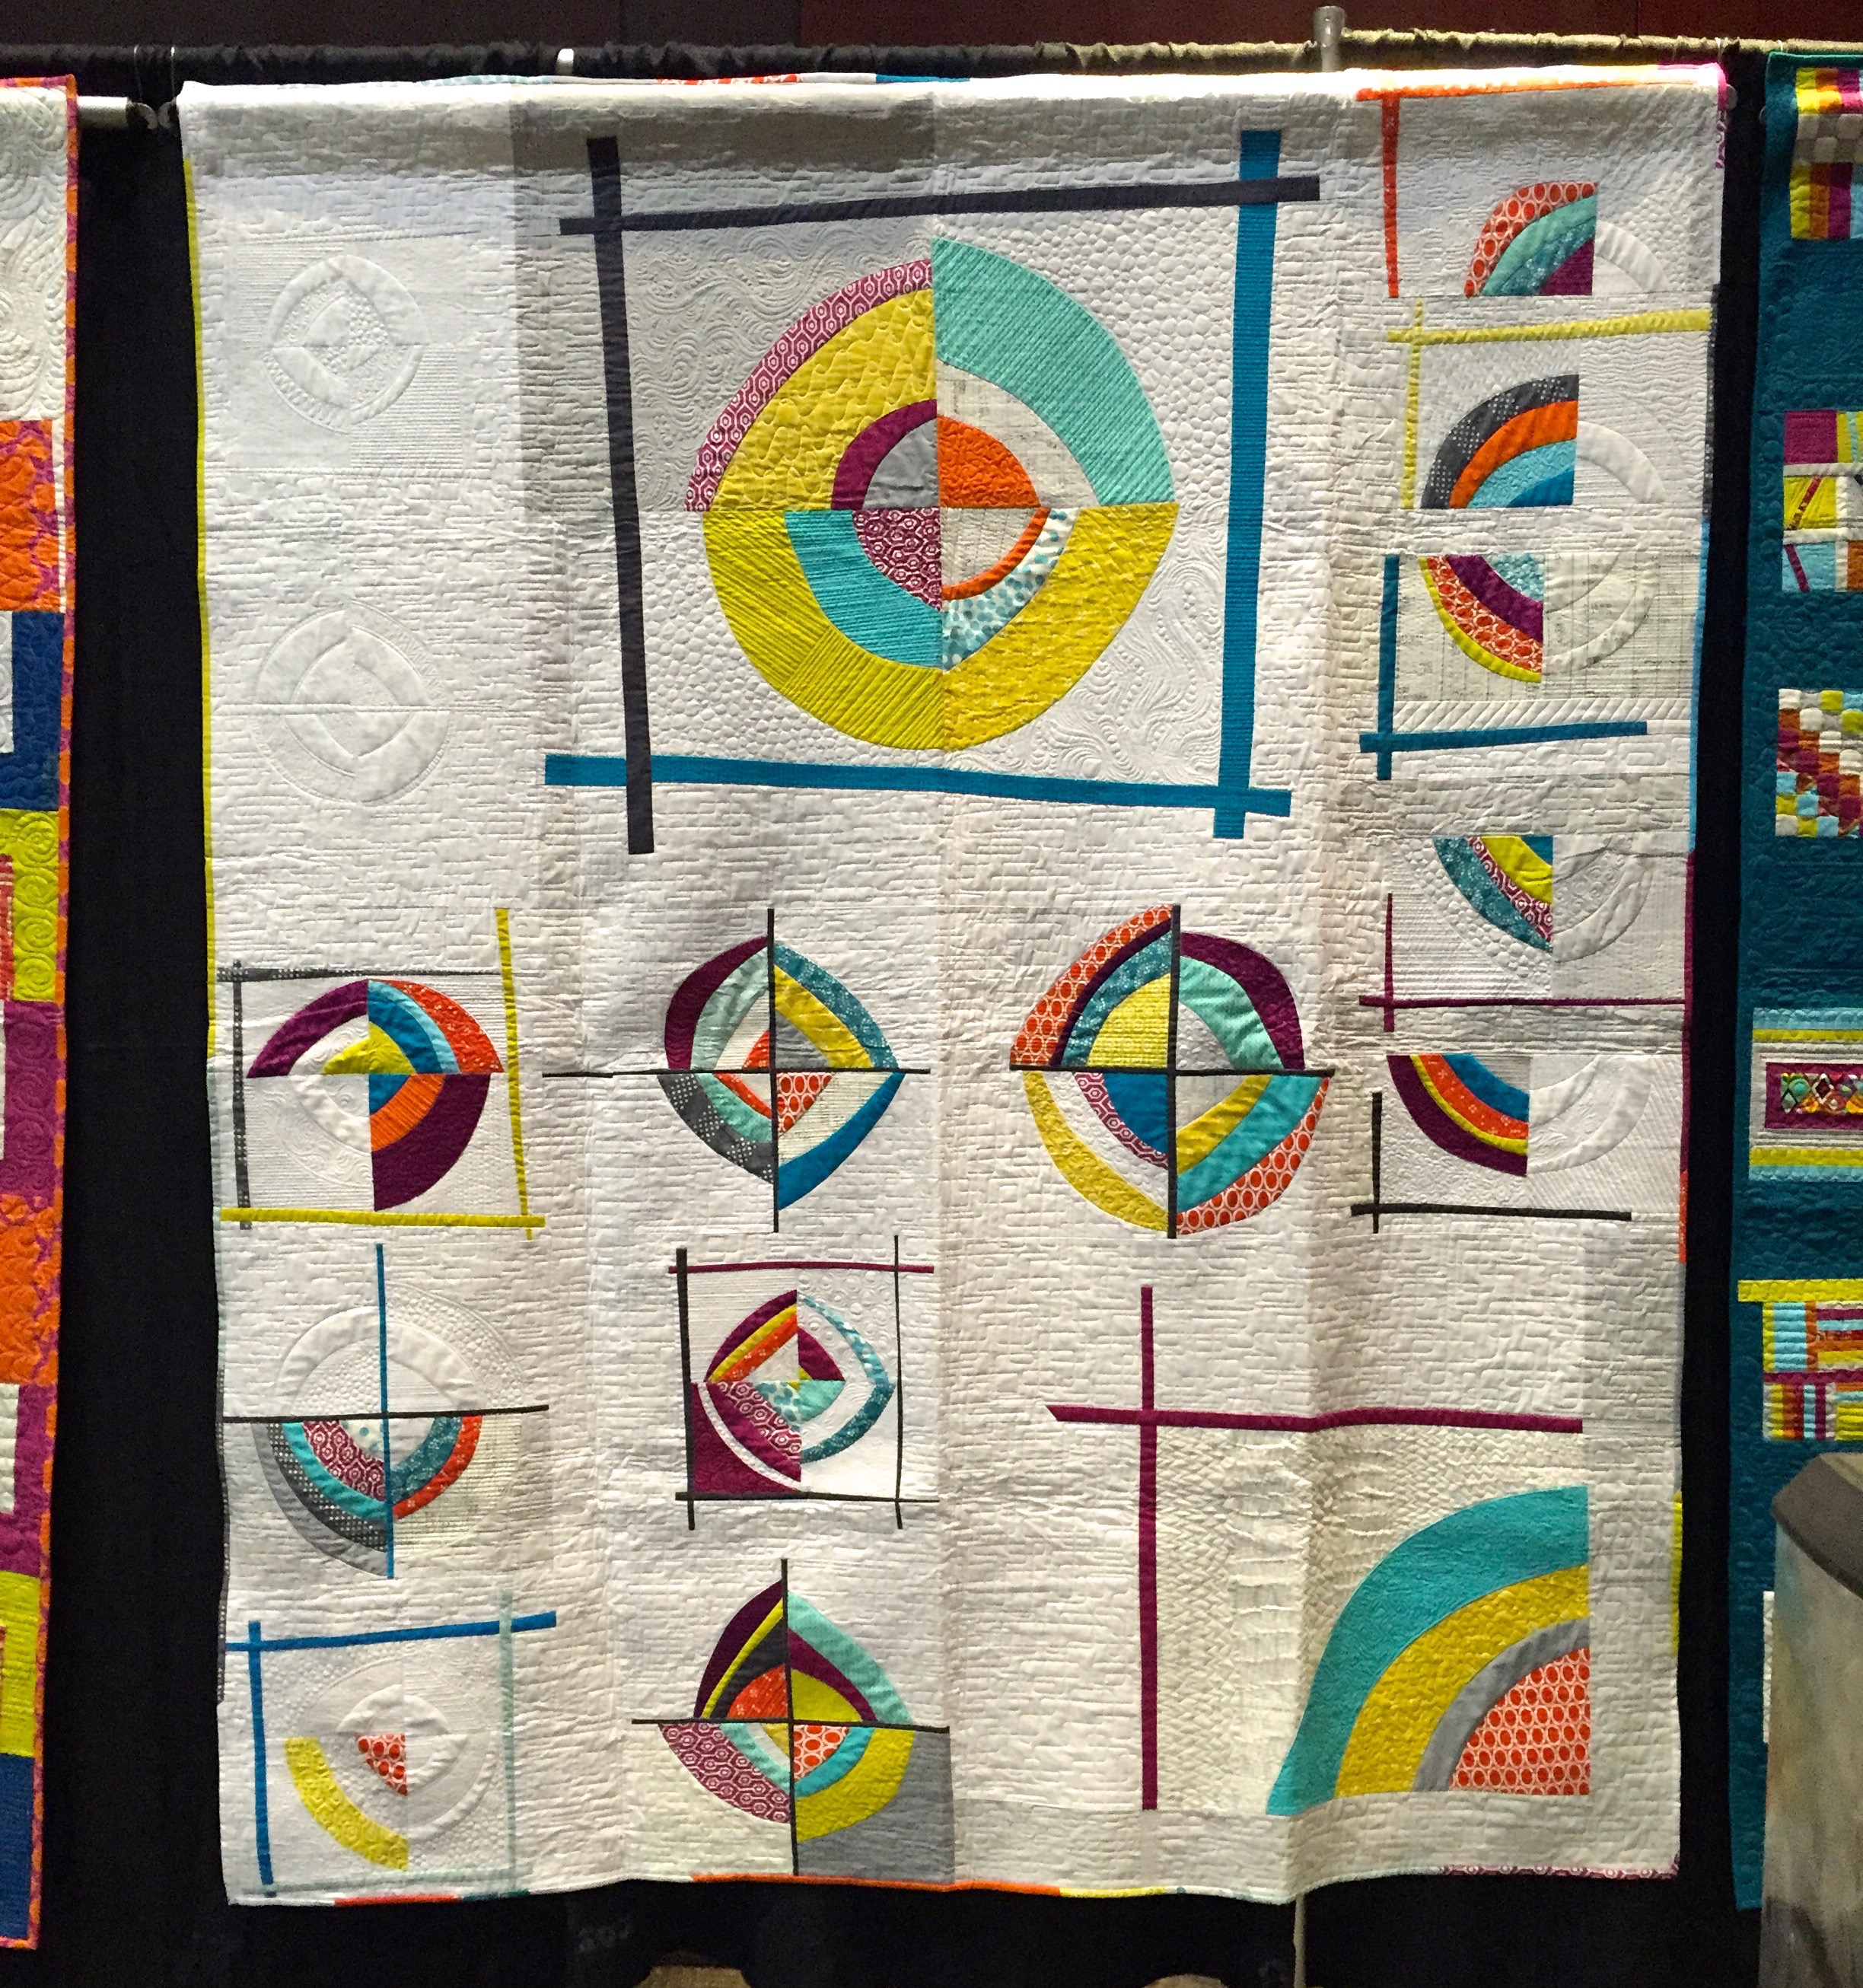 Group Charity Quilt Quiltcon 2013